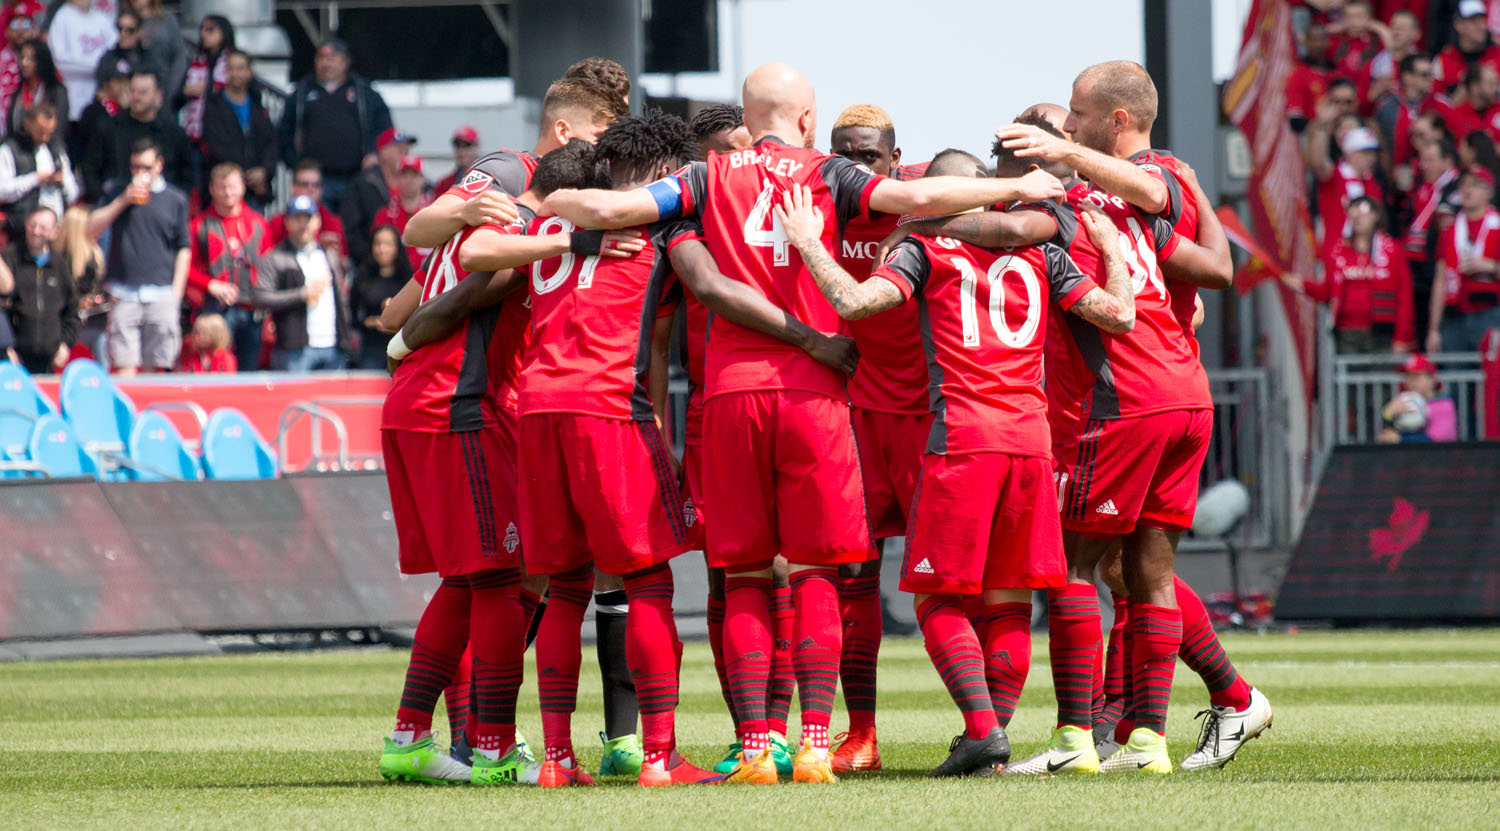 Toronto FC's starting XI against Minnesota United in a huddle before a Major League Soccer match.Image by Dennis Marciniak of denMAR Media.